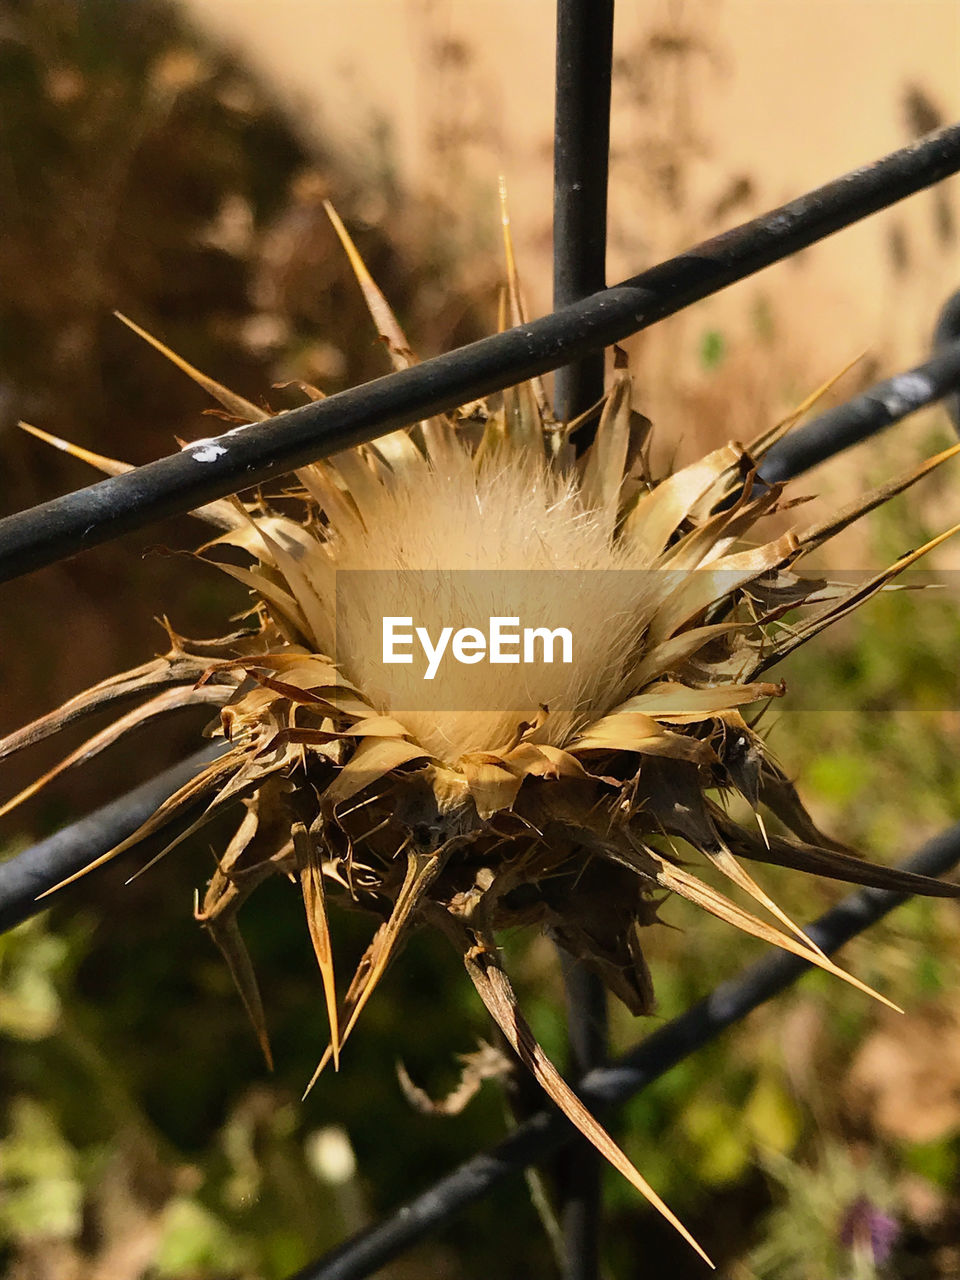 close-up, focus on foreground, plant, growth, nature, day, no people, beauty in nature, flower, selective focus, outdoors, fragility, freshness, vulnerability, flowering plant, invertebrate, land, plant stem, field, insect, softness, dandelion seed